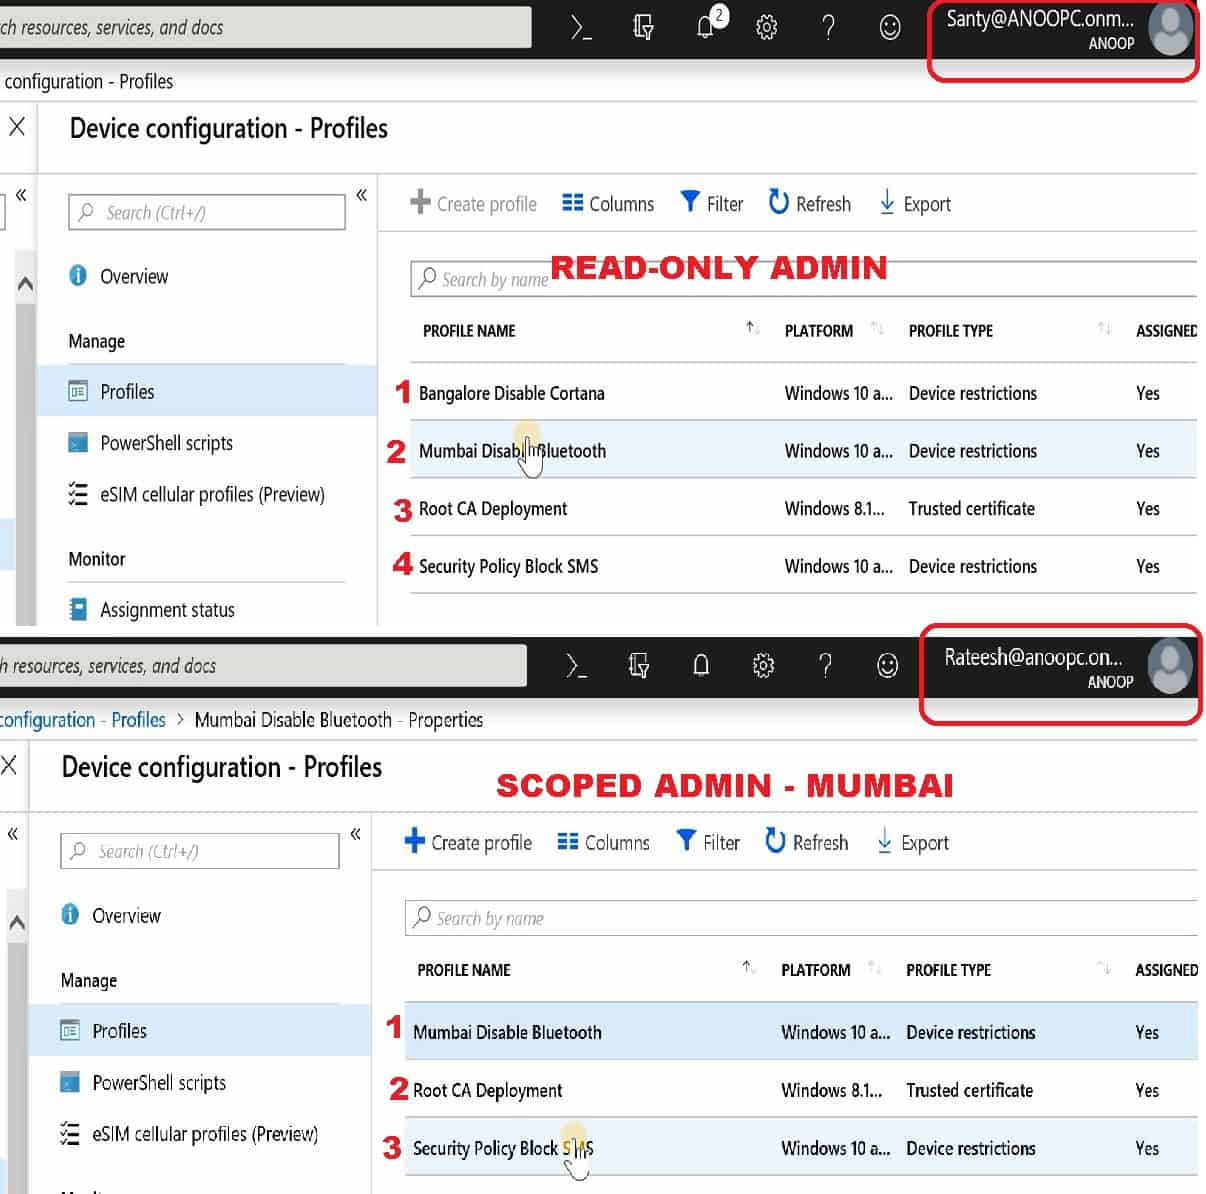 Intune Read-Only Admin - Scoped Admin